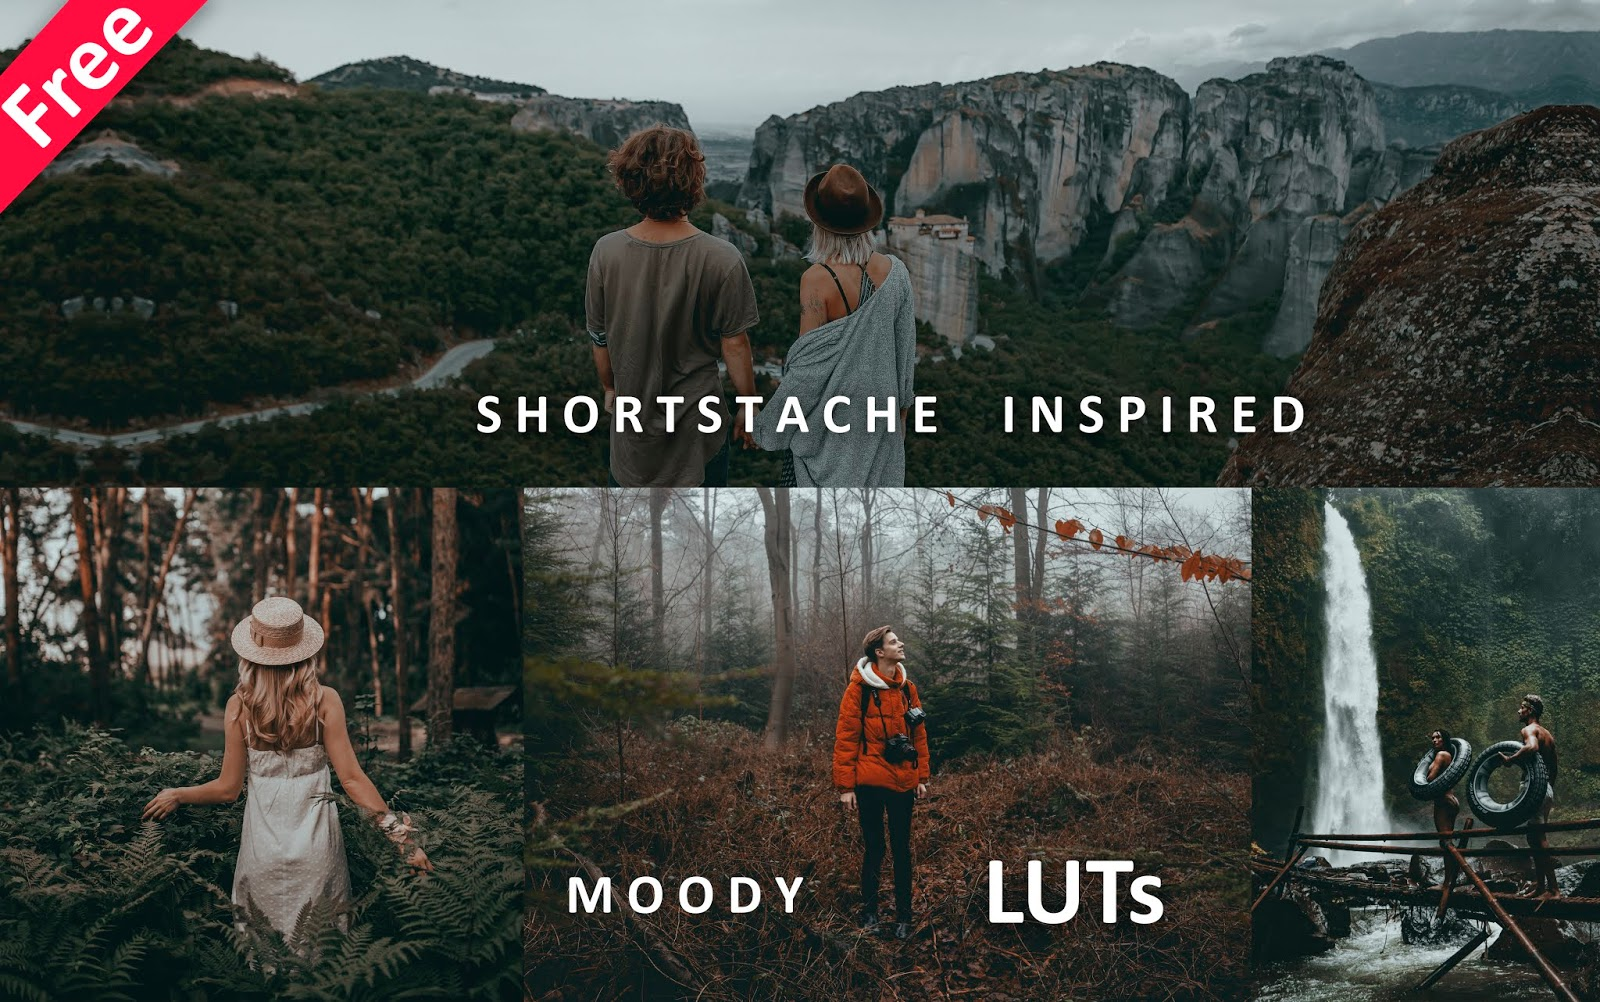 Download Shortstache Inspired LUTs for Free | How to Edit Like @shortstache in Photoshop